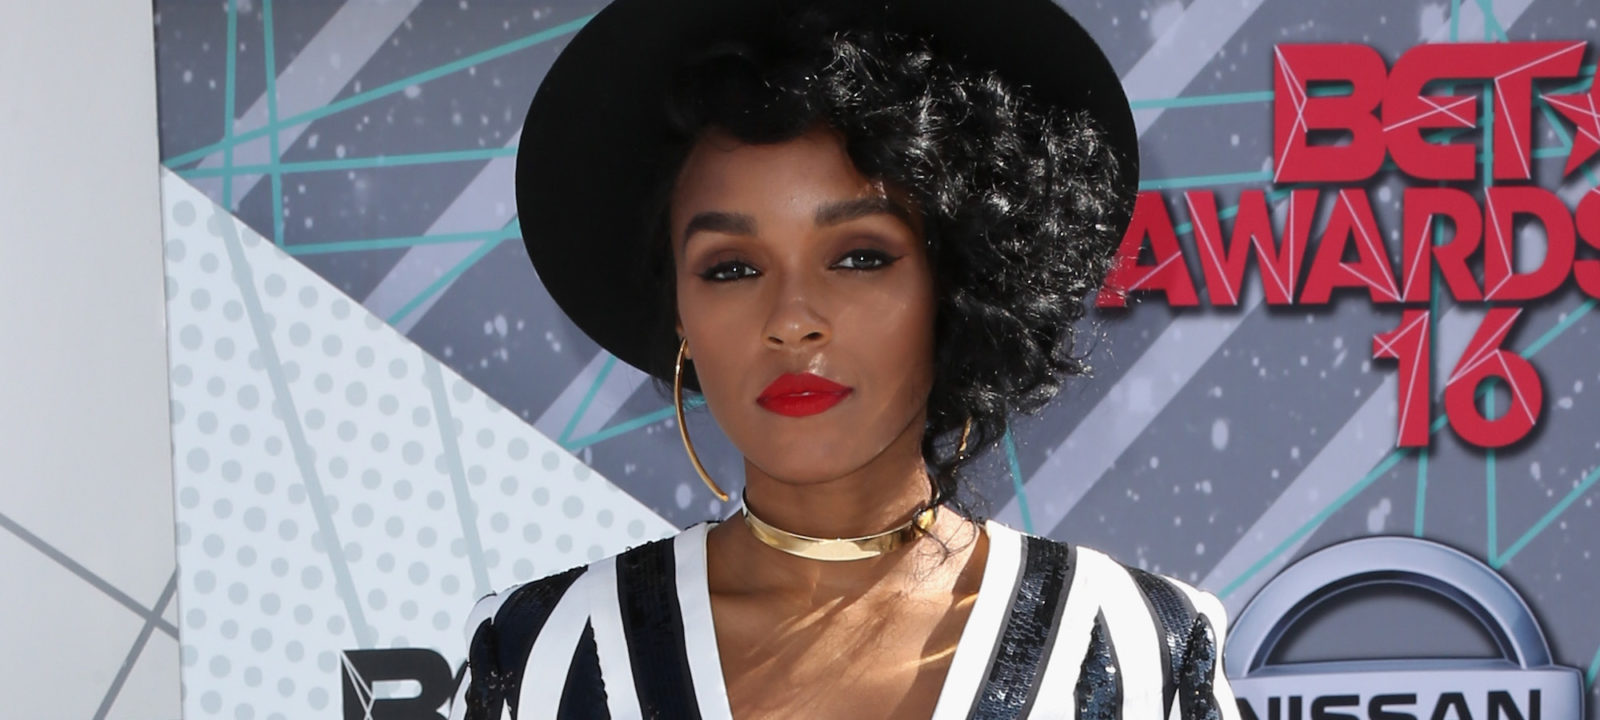 Singer Janelle Monae attends the 2016 BET Awards at the Microsoft Theater on June 26, 2016 in Los Angeles, California.